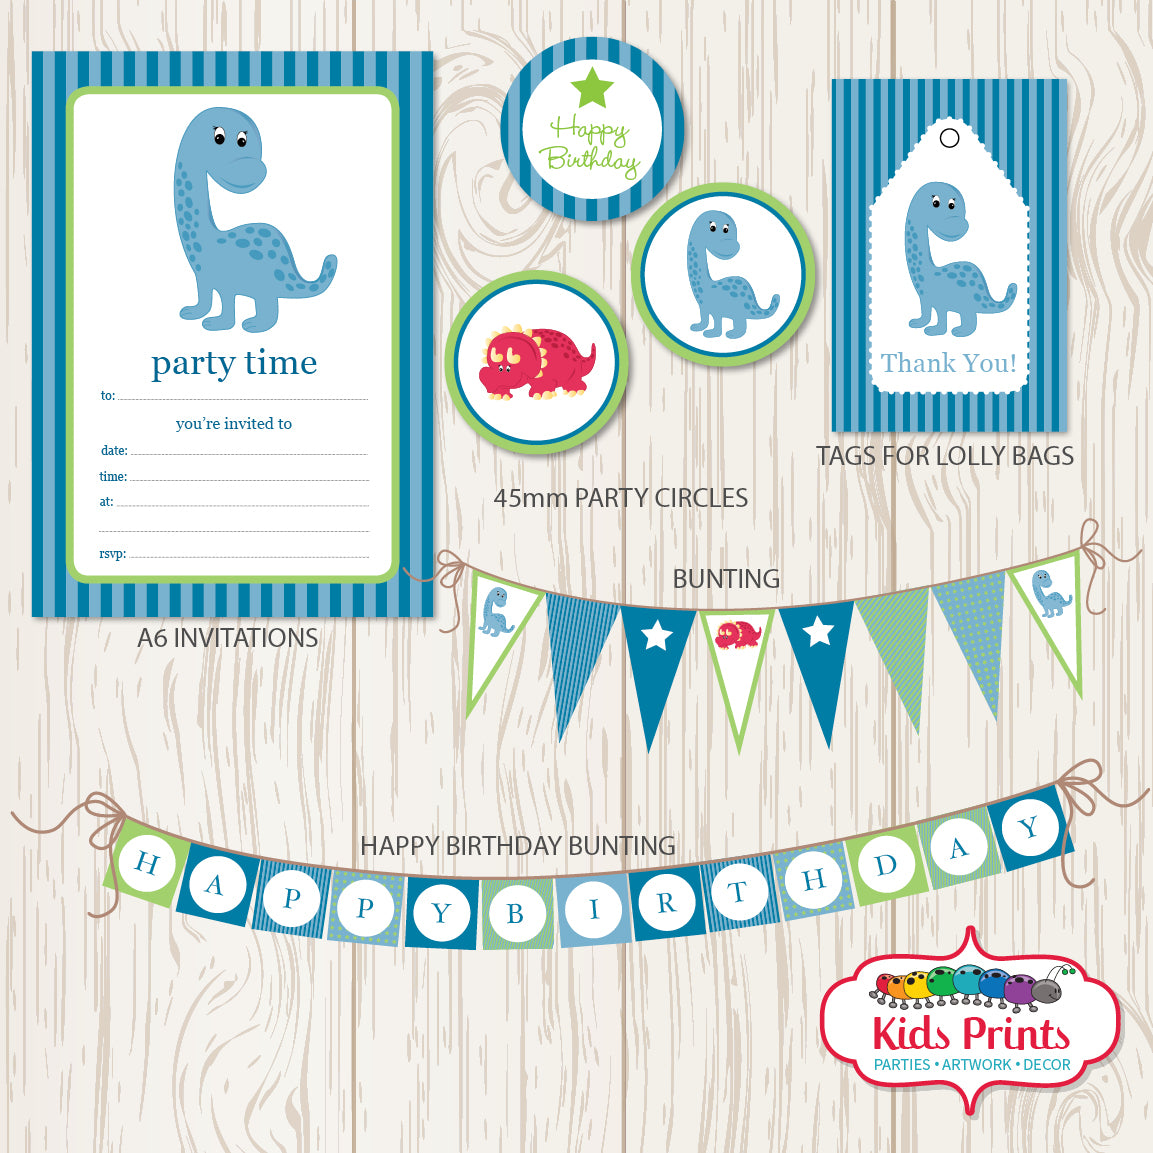 Blue Dinosaur Party | Printable Stationery - Kids Prints Online